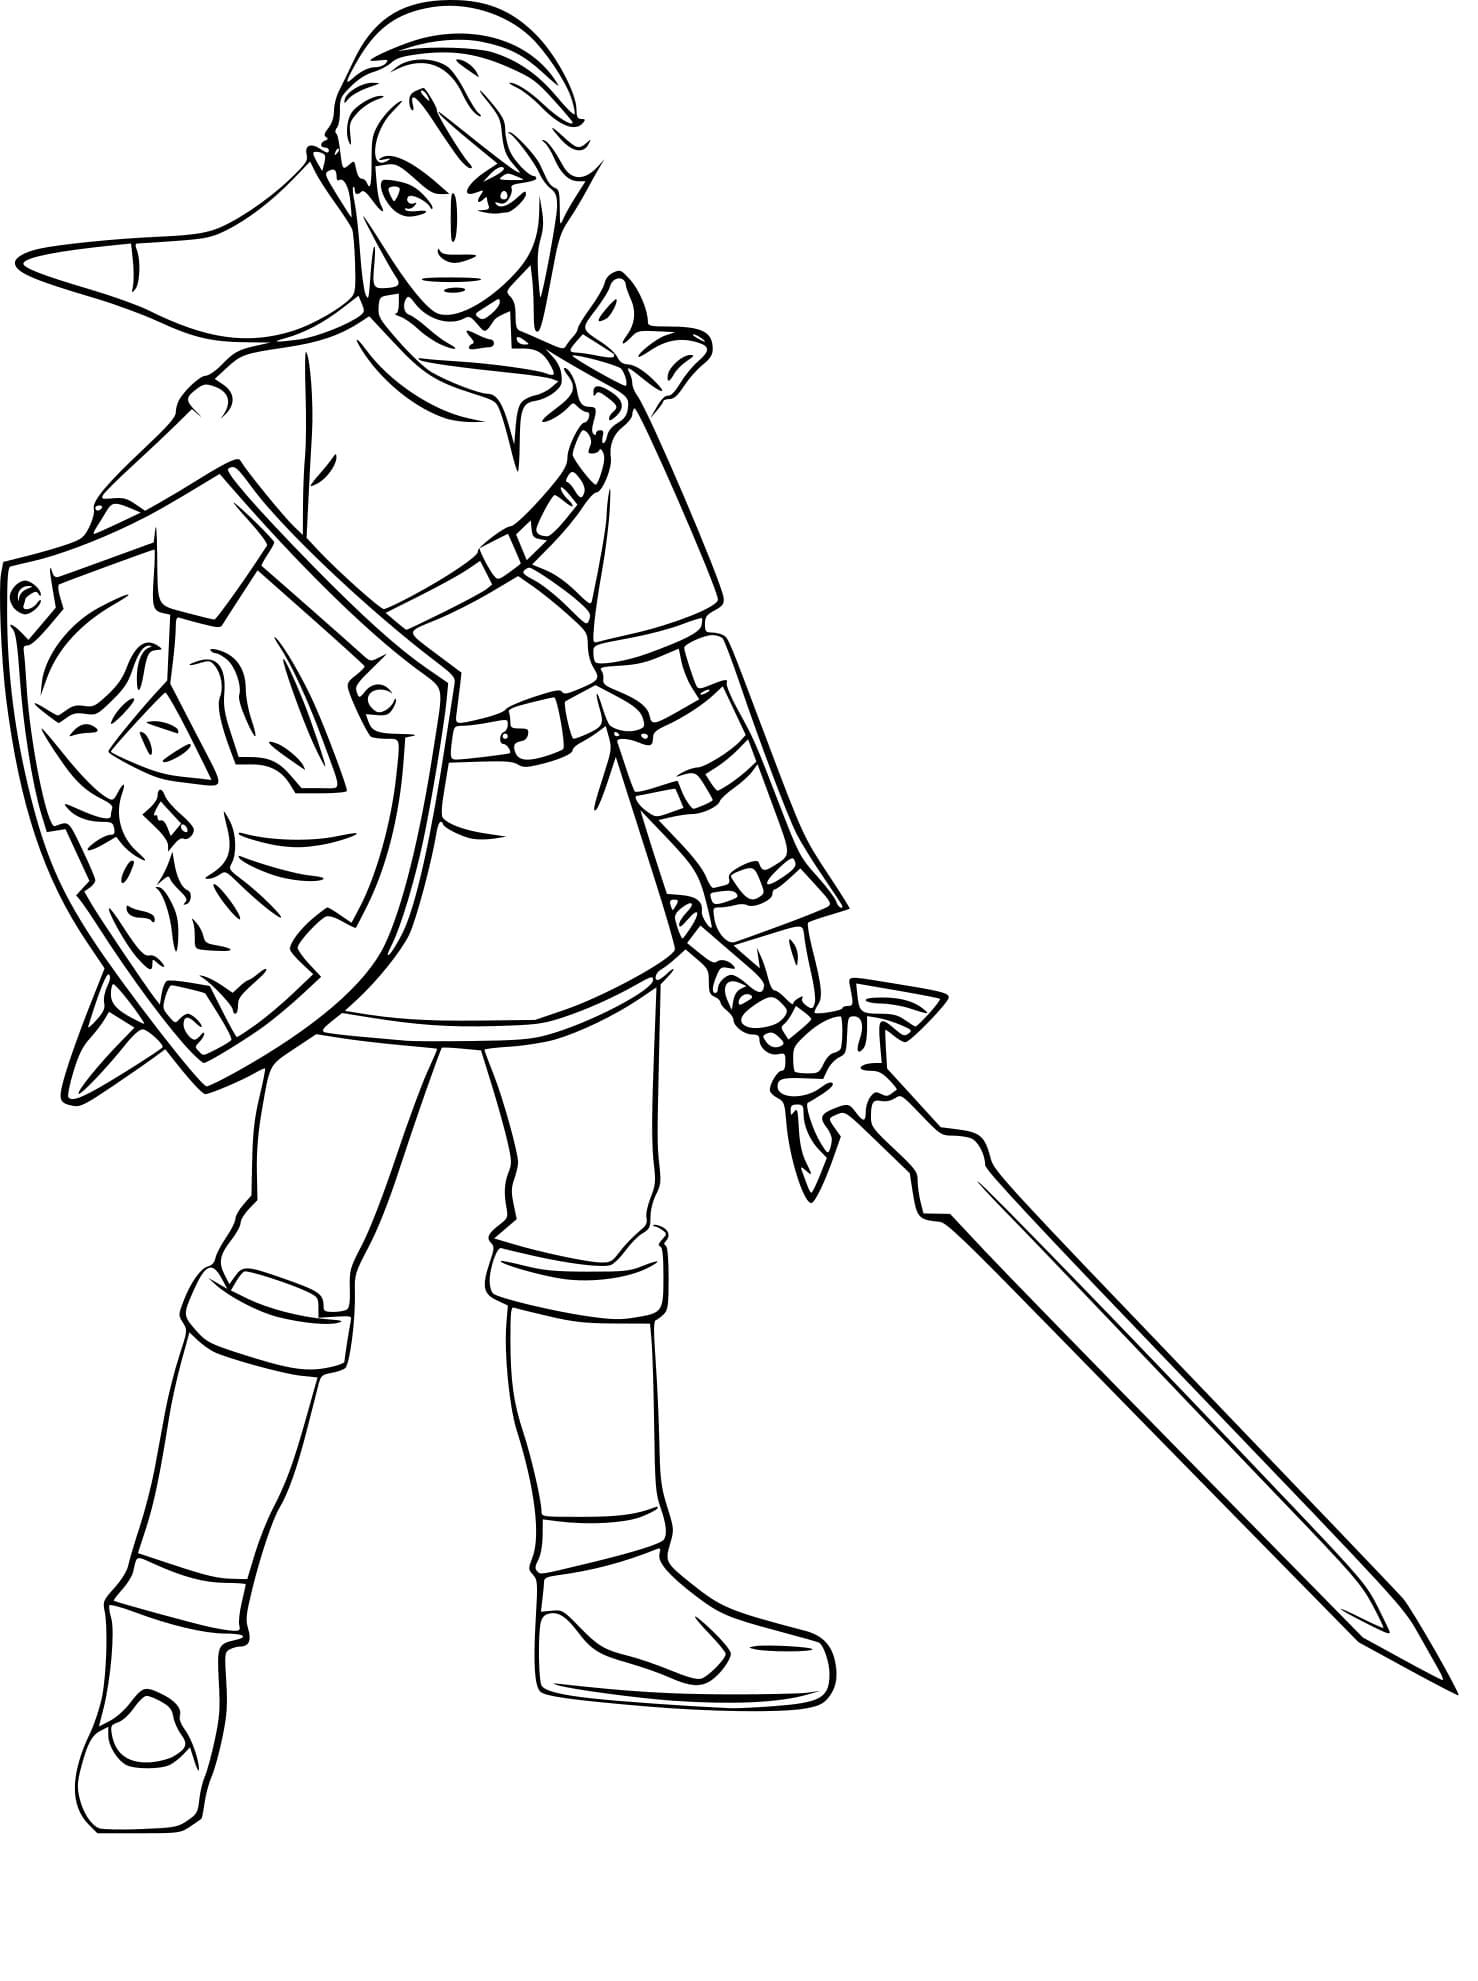 the legend of zelda coloring for free printable wonder imaginary animal student lesson coloring pages Legend Of Zelda Coloring Page